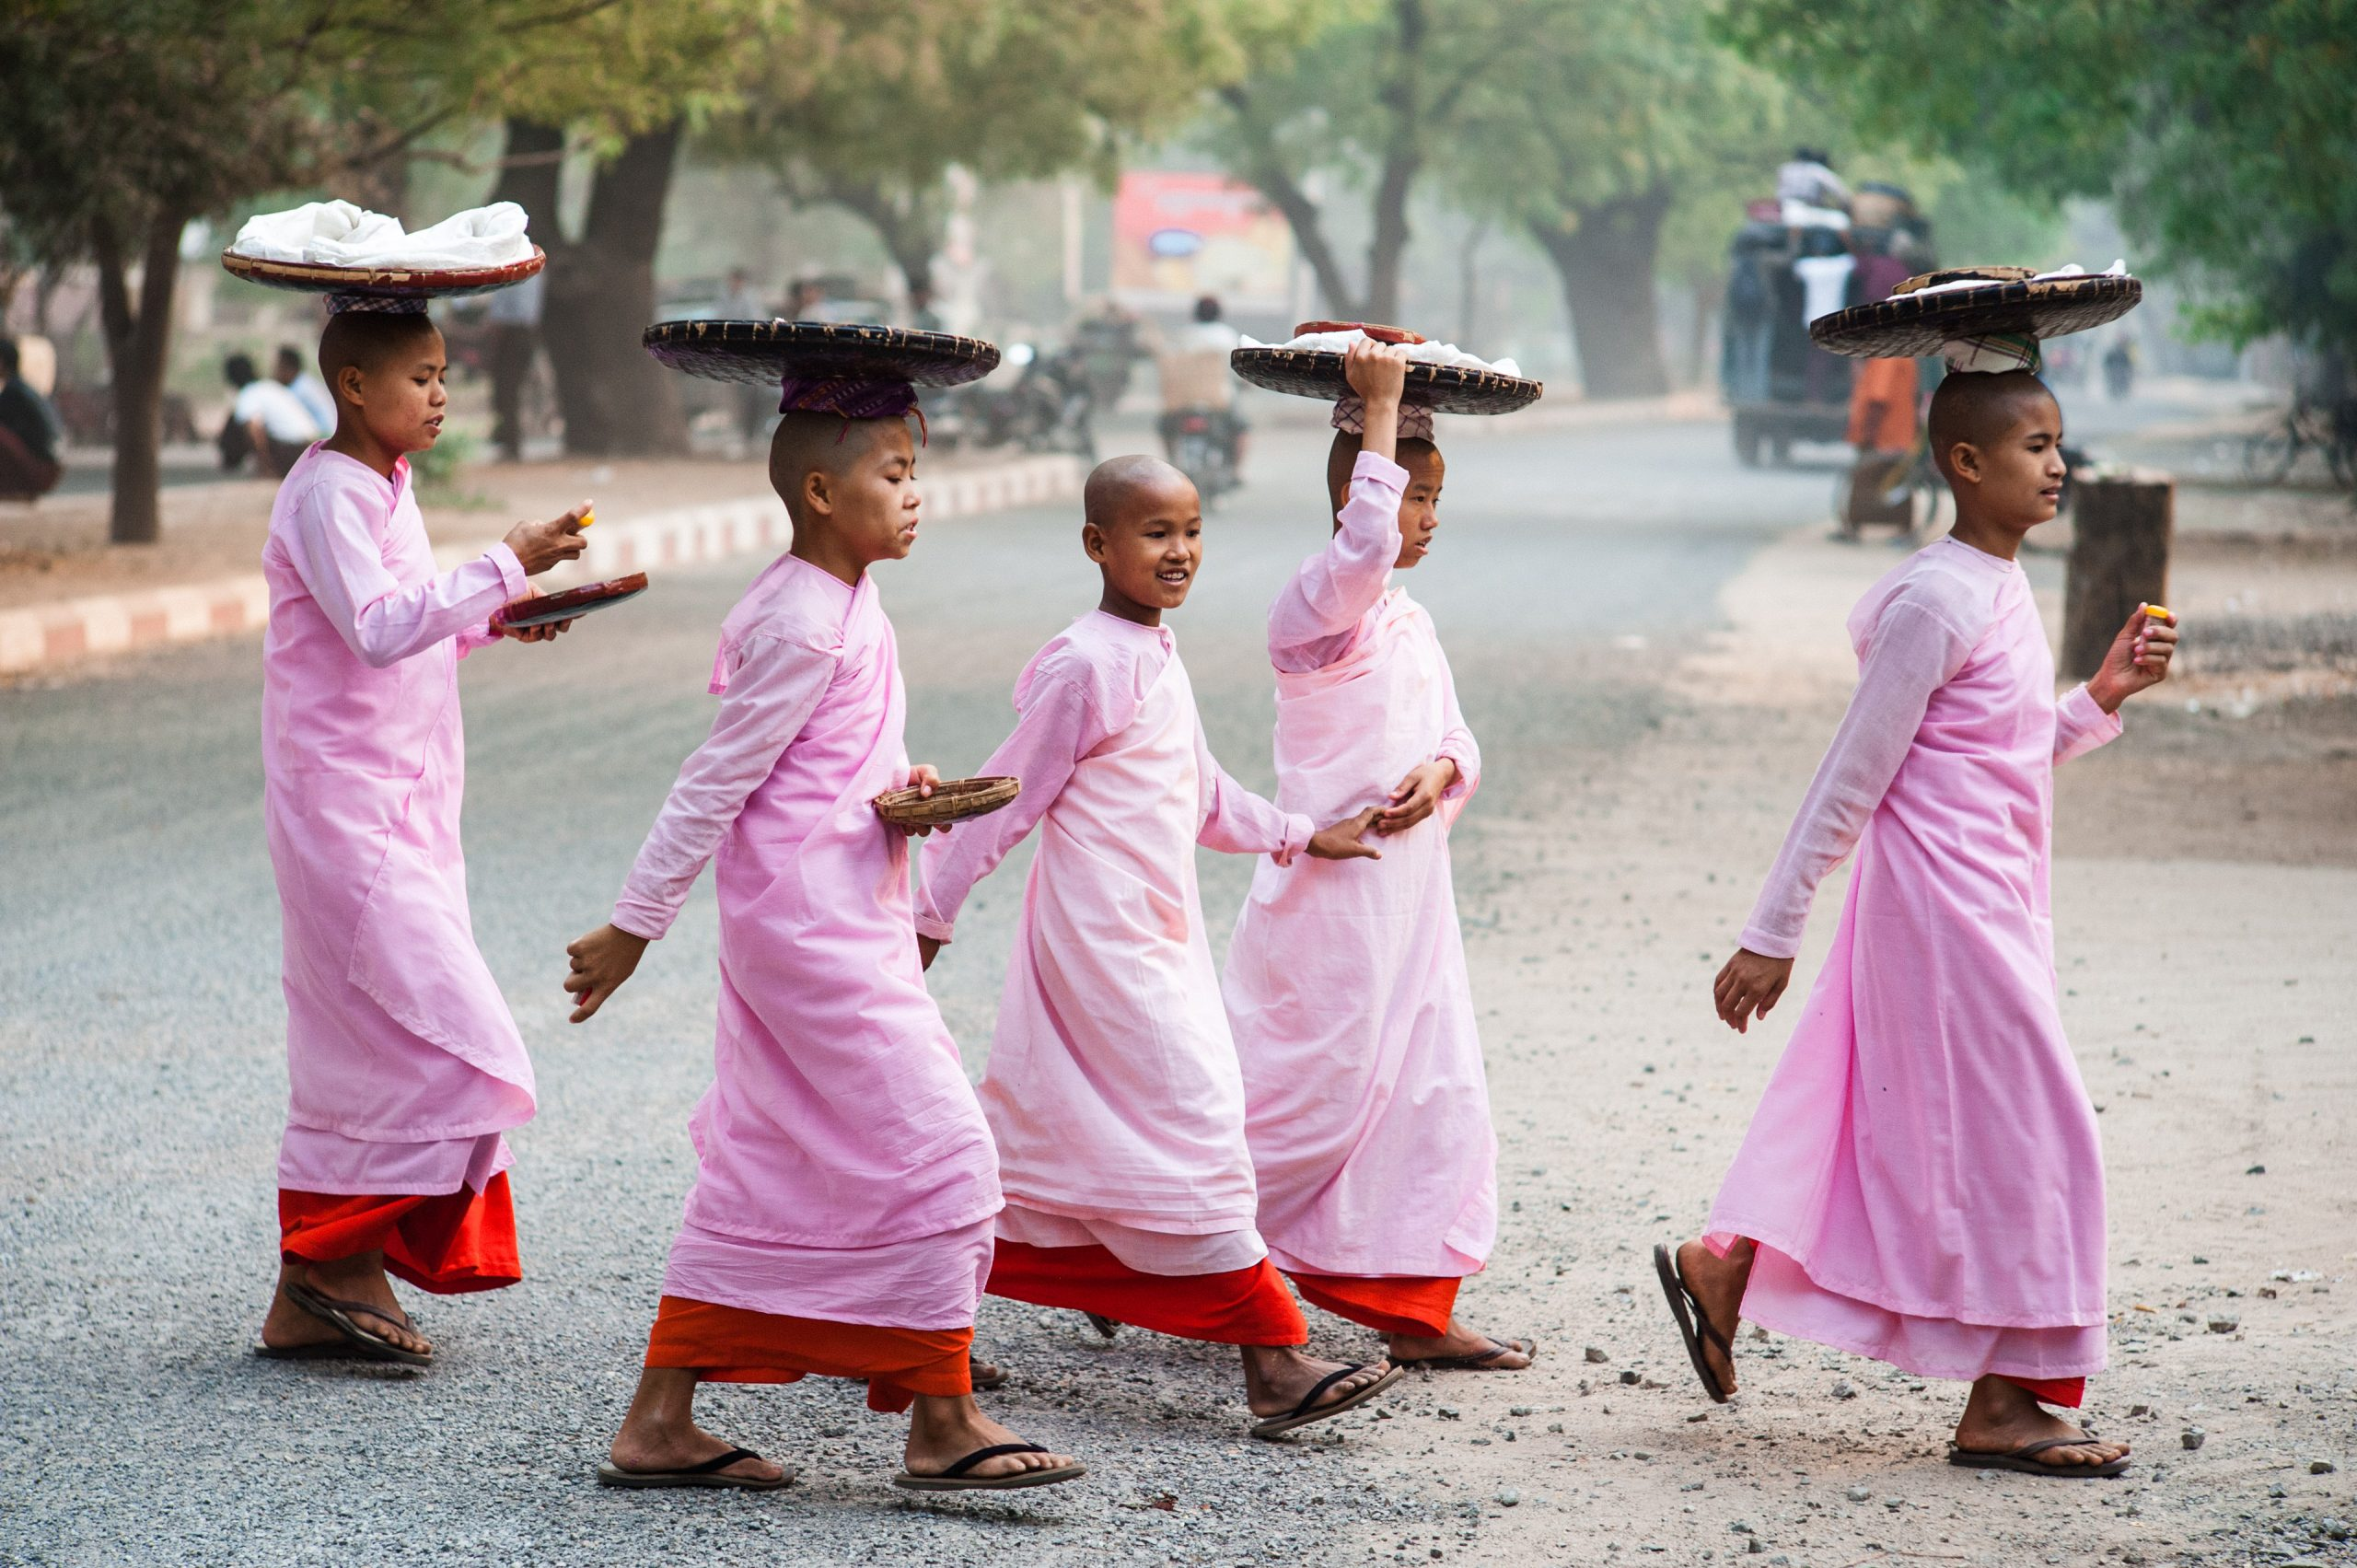 Nuns out on an early morning pindapata - food collection - in their home town of Bagan, Nyaung U, Mandalay Region, Burma. One of Martin Edström's 10 remarkable images.